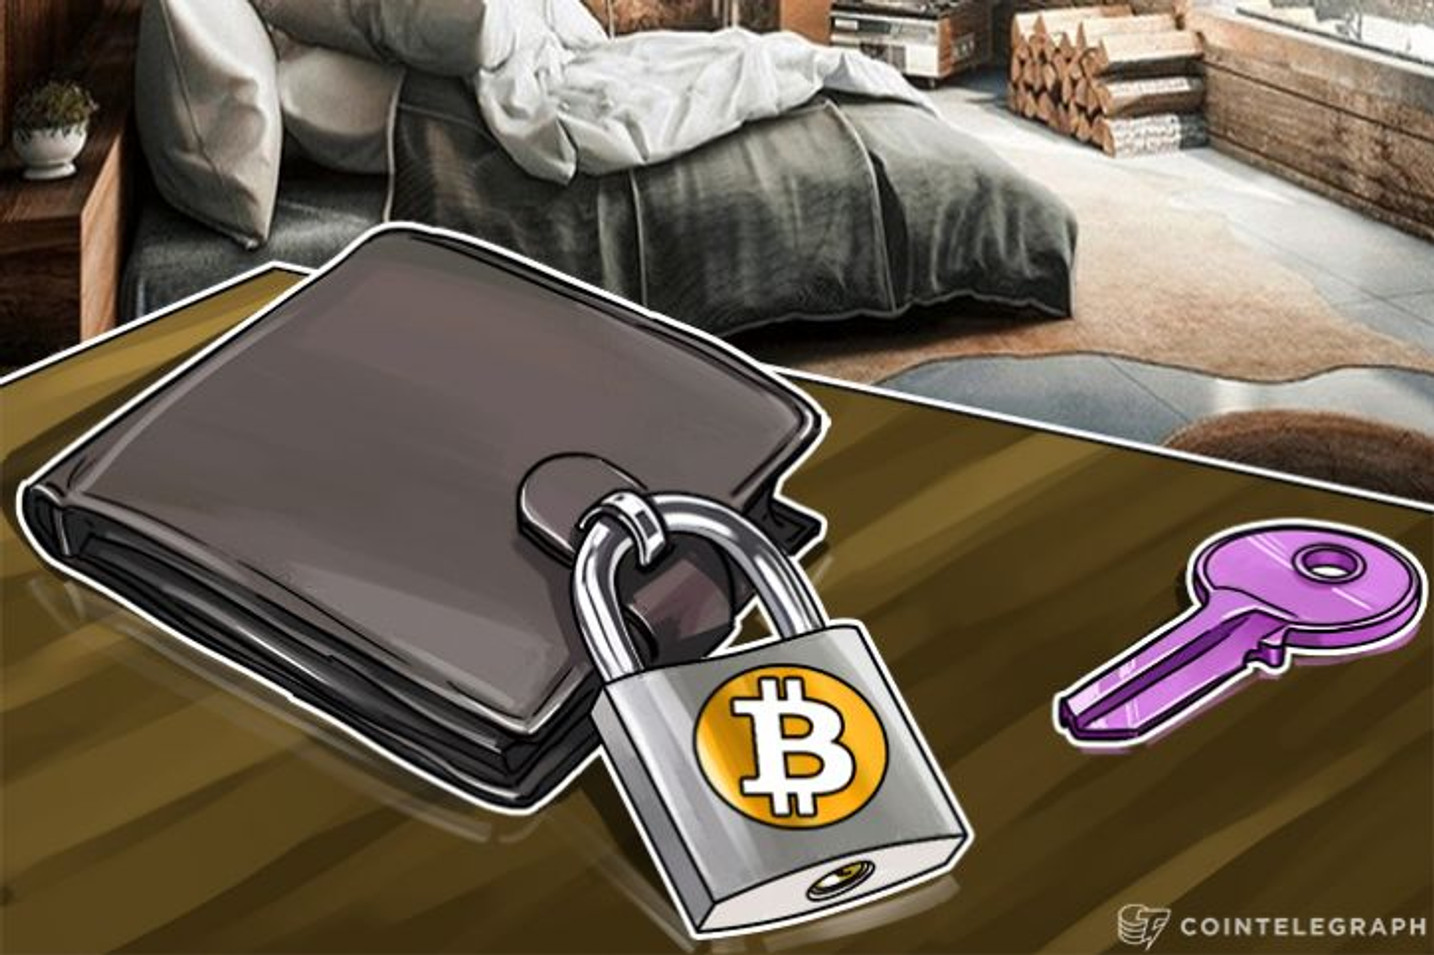 Bitcoin Wallet Provider Armory: We 'Do Not Support Any Controversial Hard Forks'